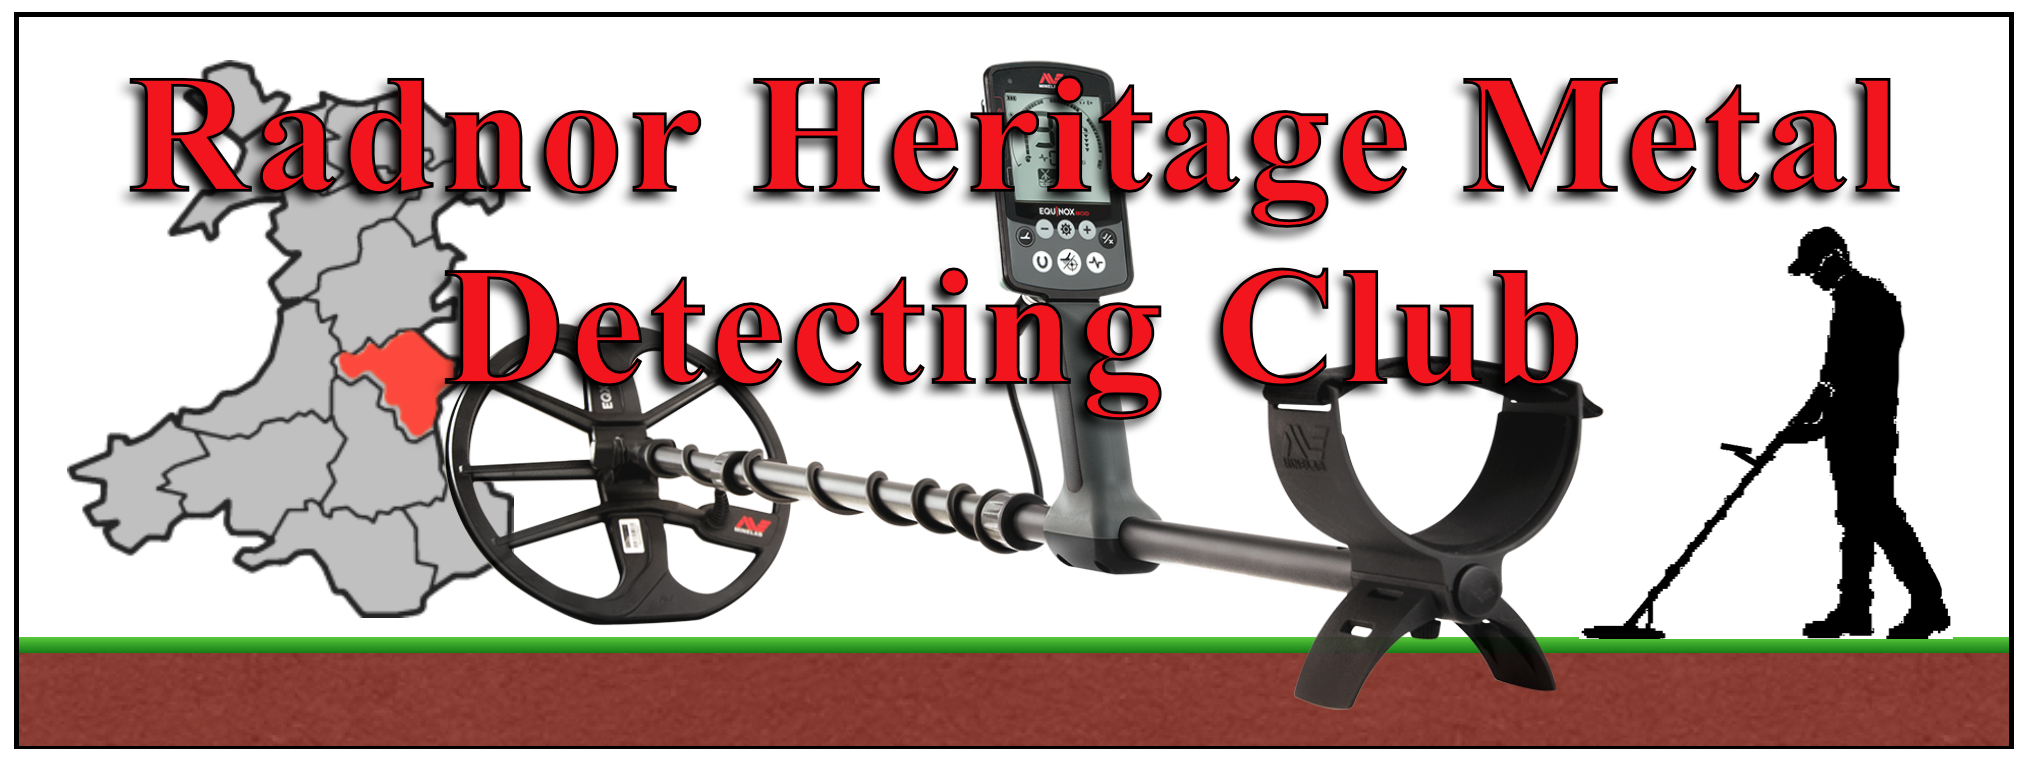 Radnor Heritage Metal Detecting Club